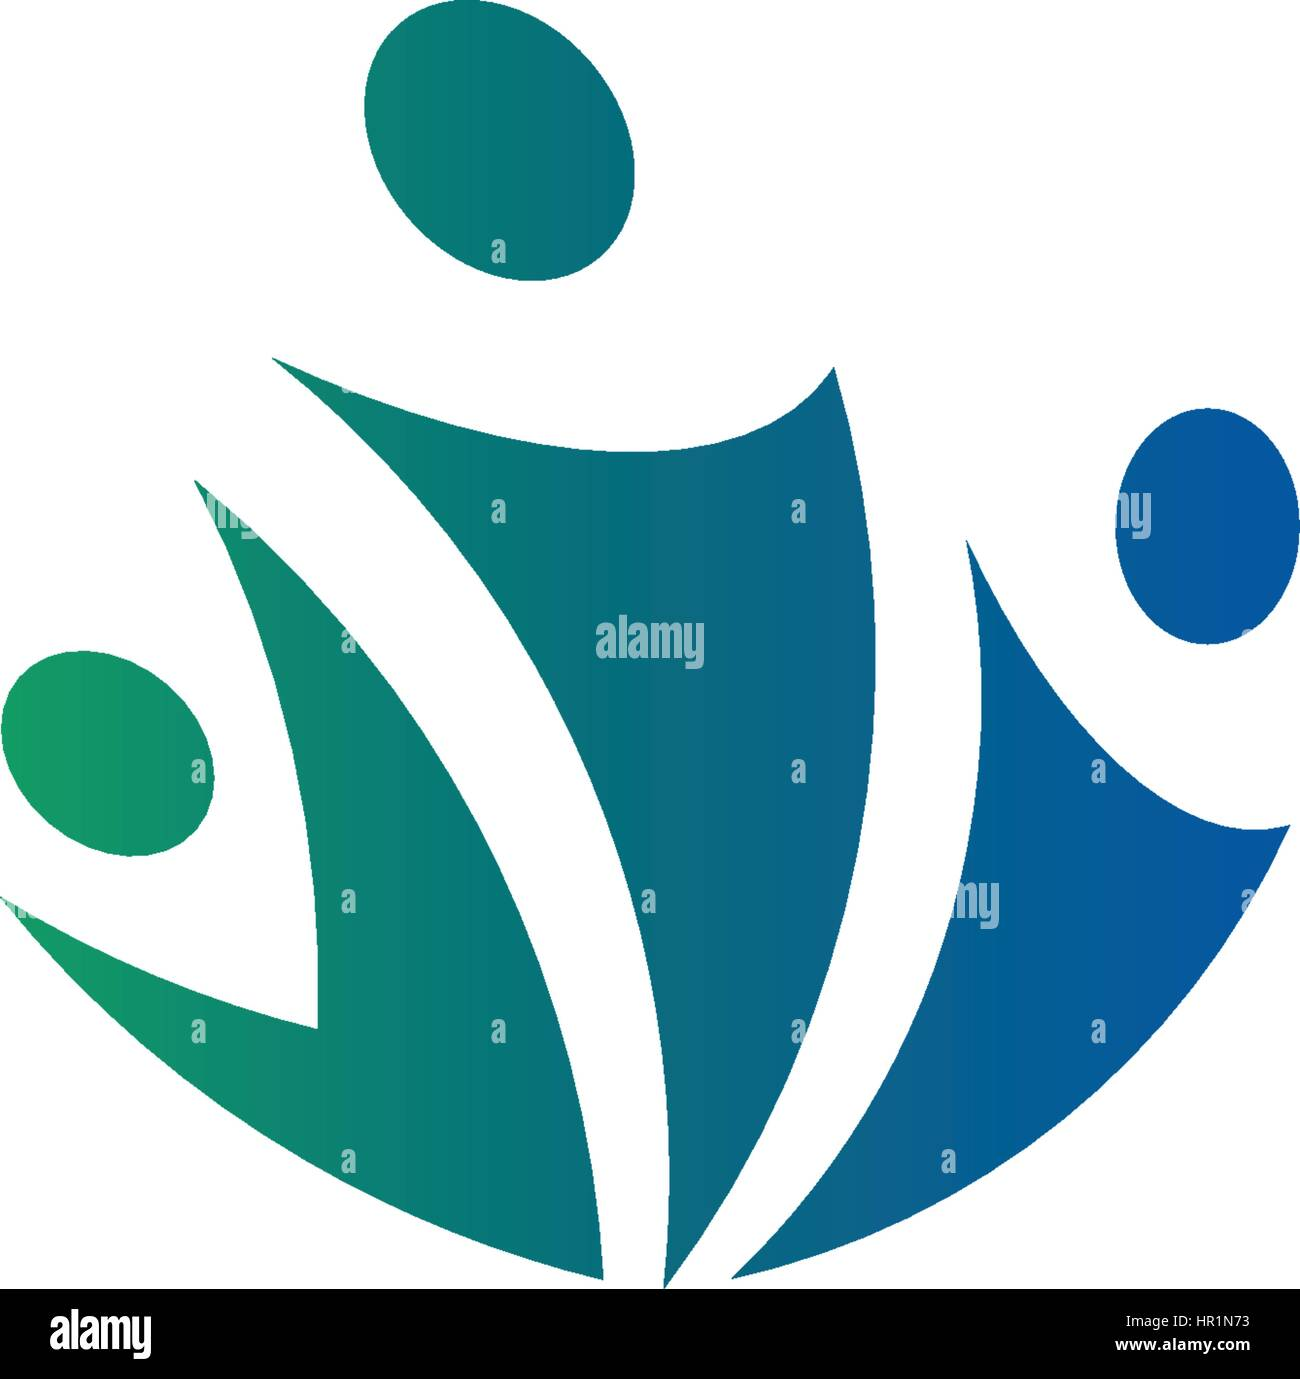 Isolated abstract blue and green color group of three people logo on white background vector illustration. - Stock Vector